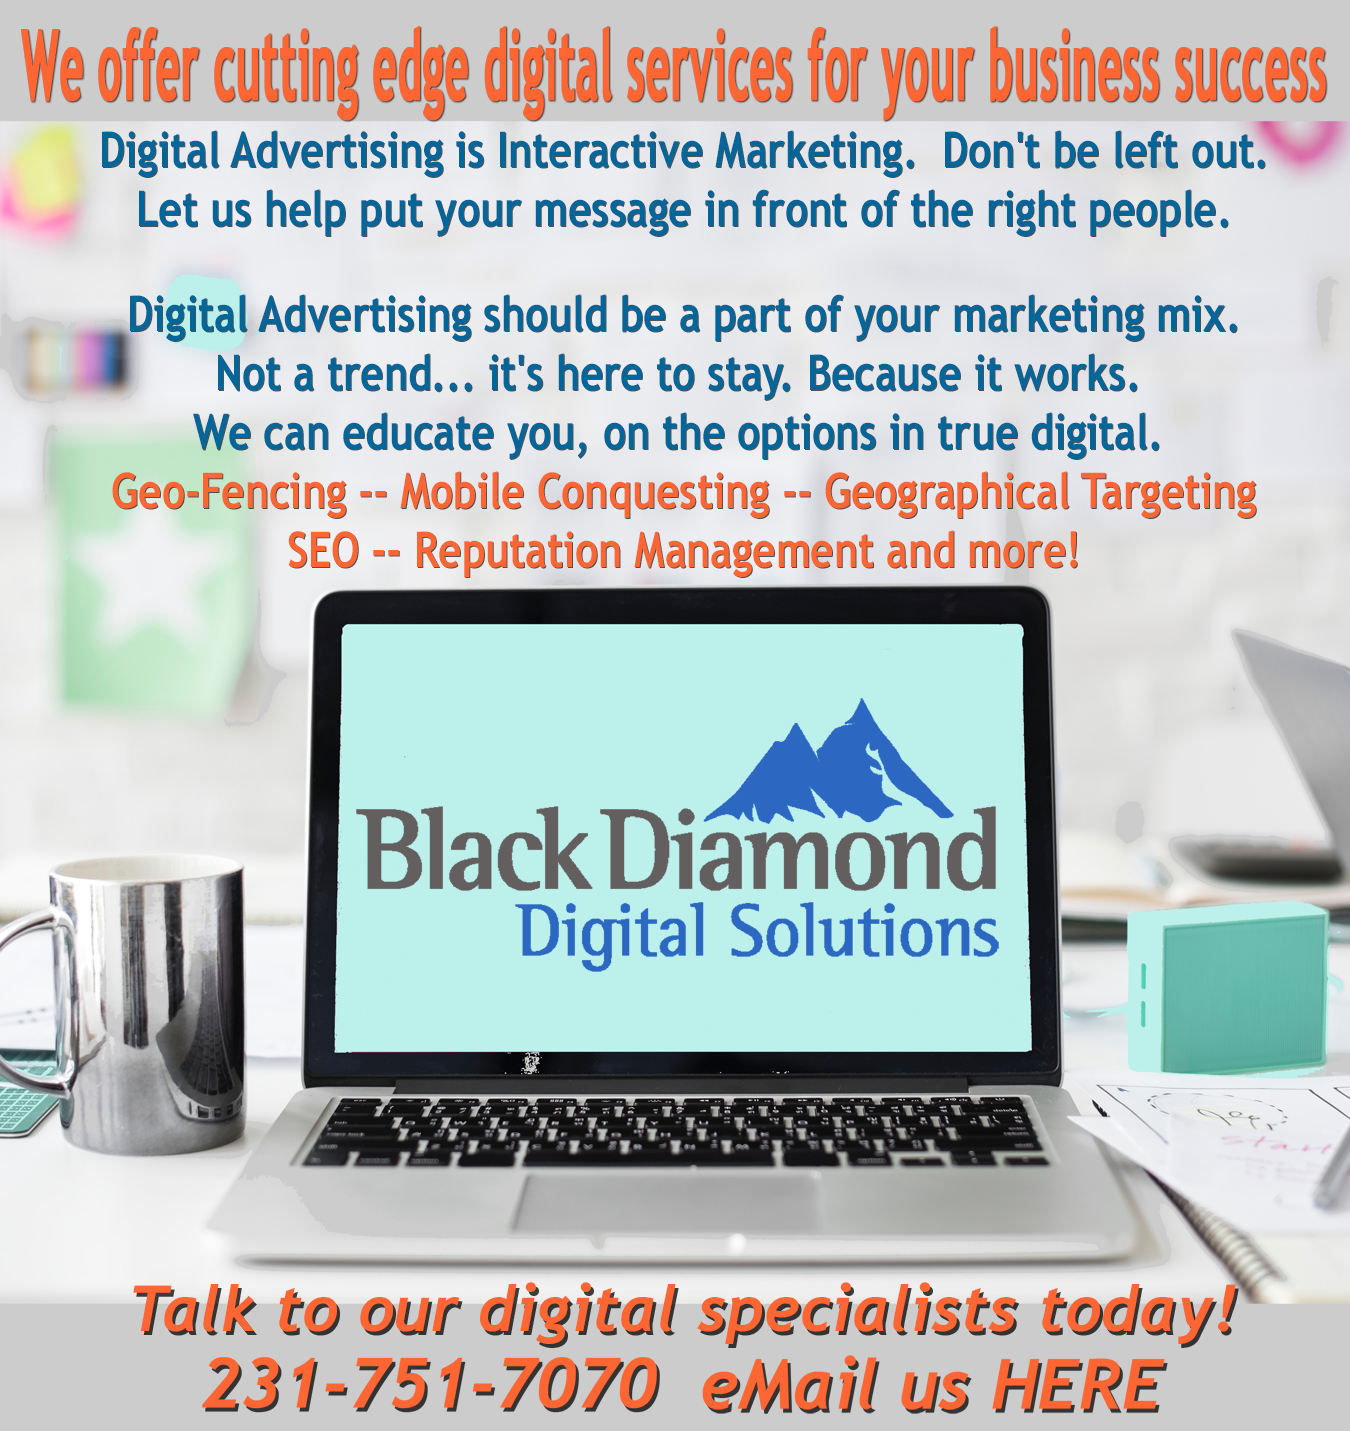 Black Diamond Digital Solutions